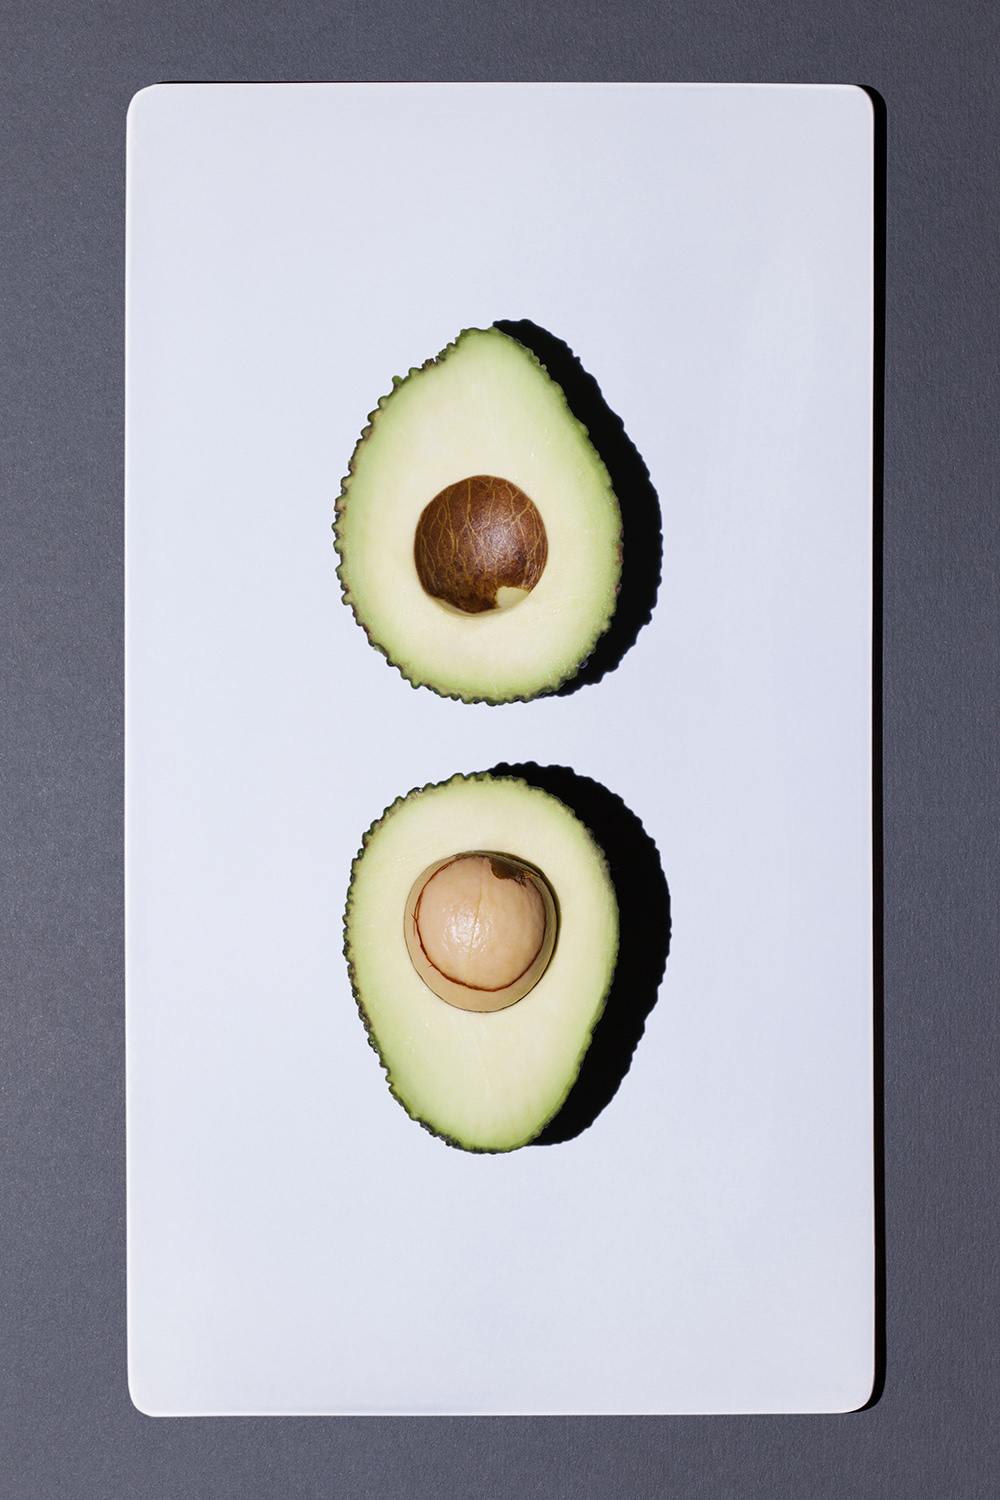 avocado_halves_2356_2391.jpg